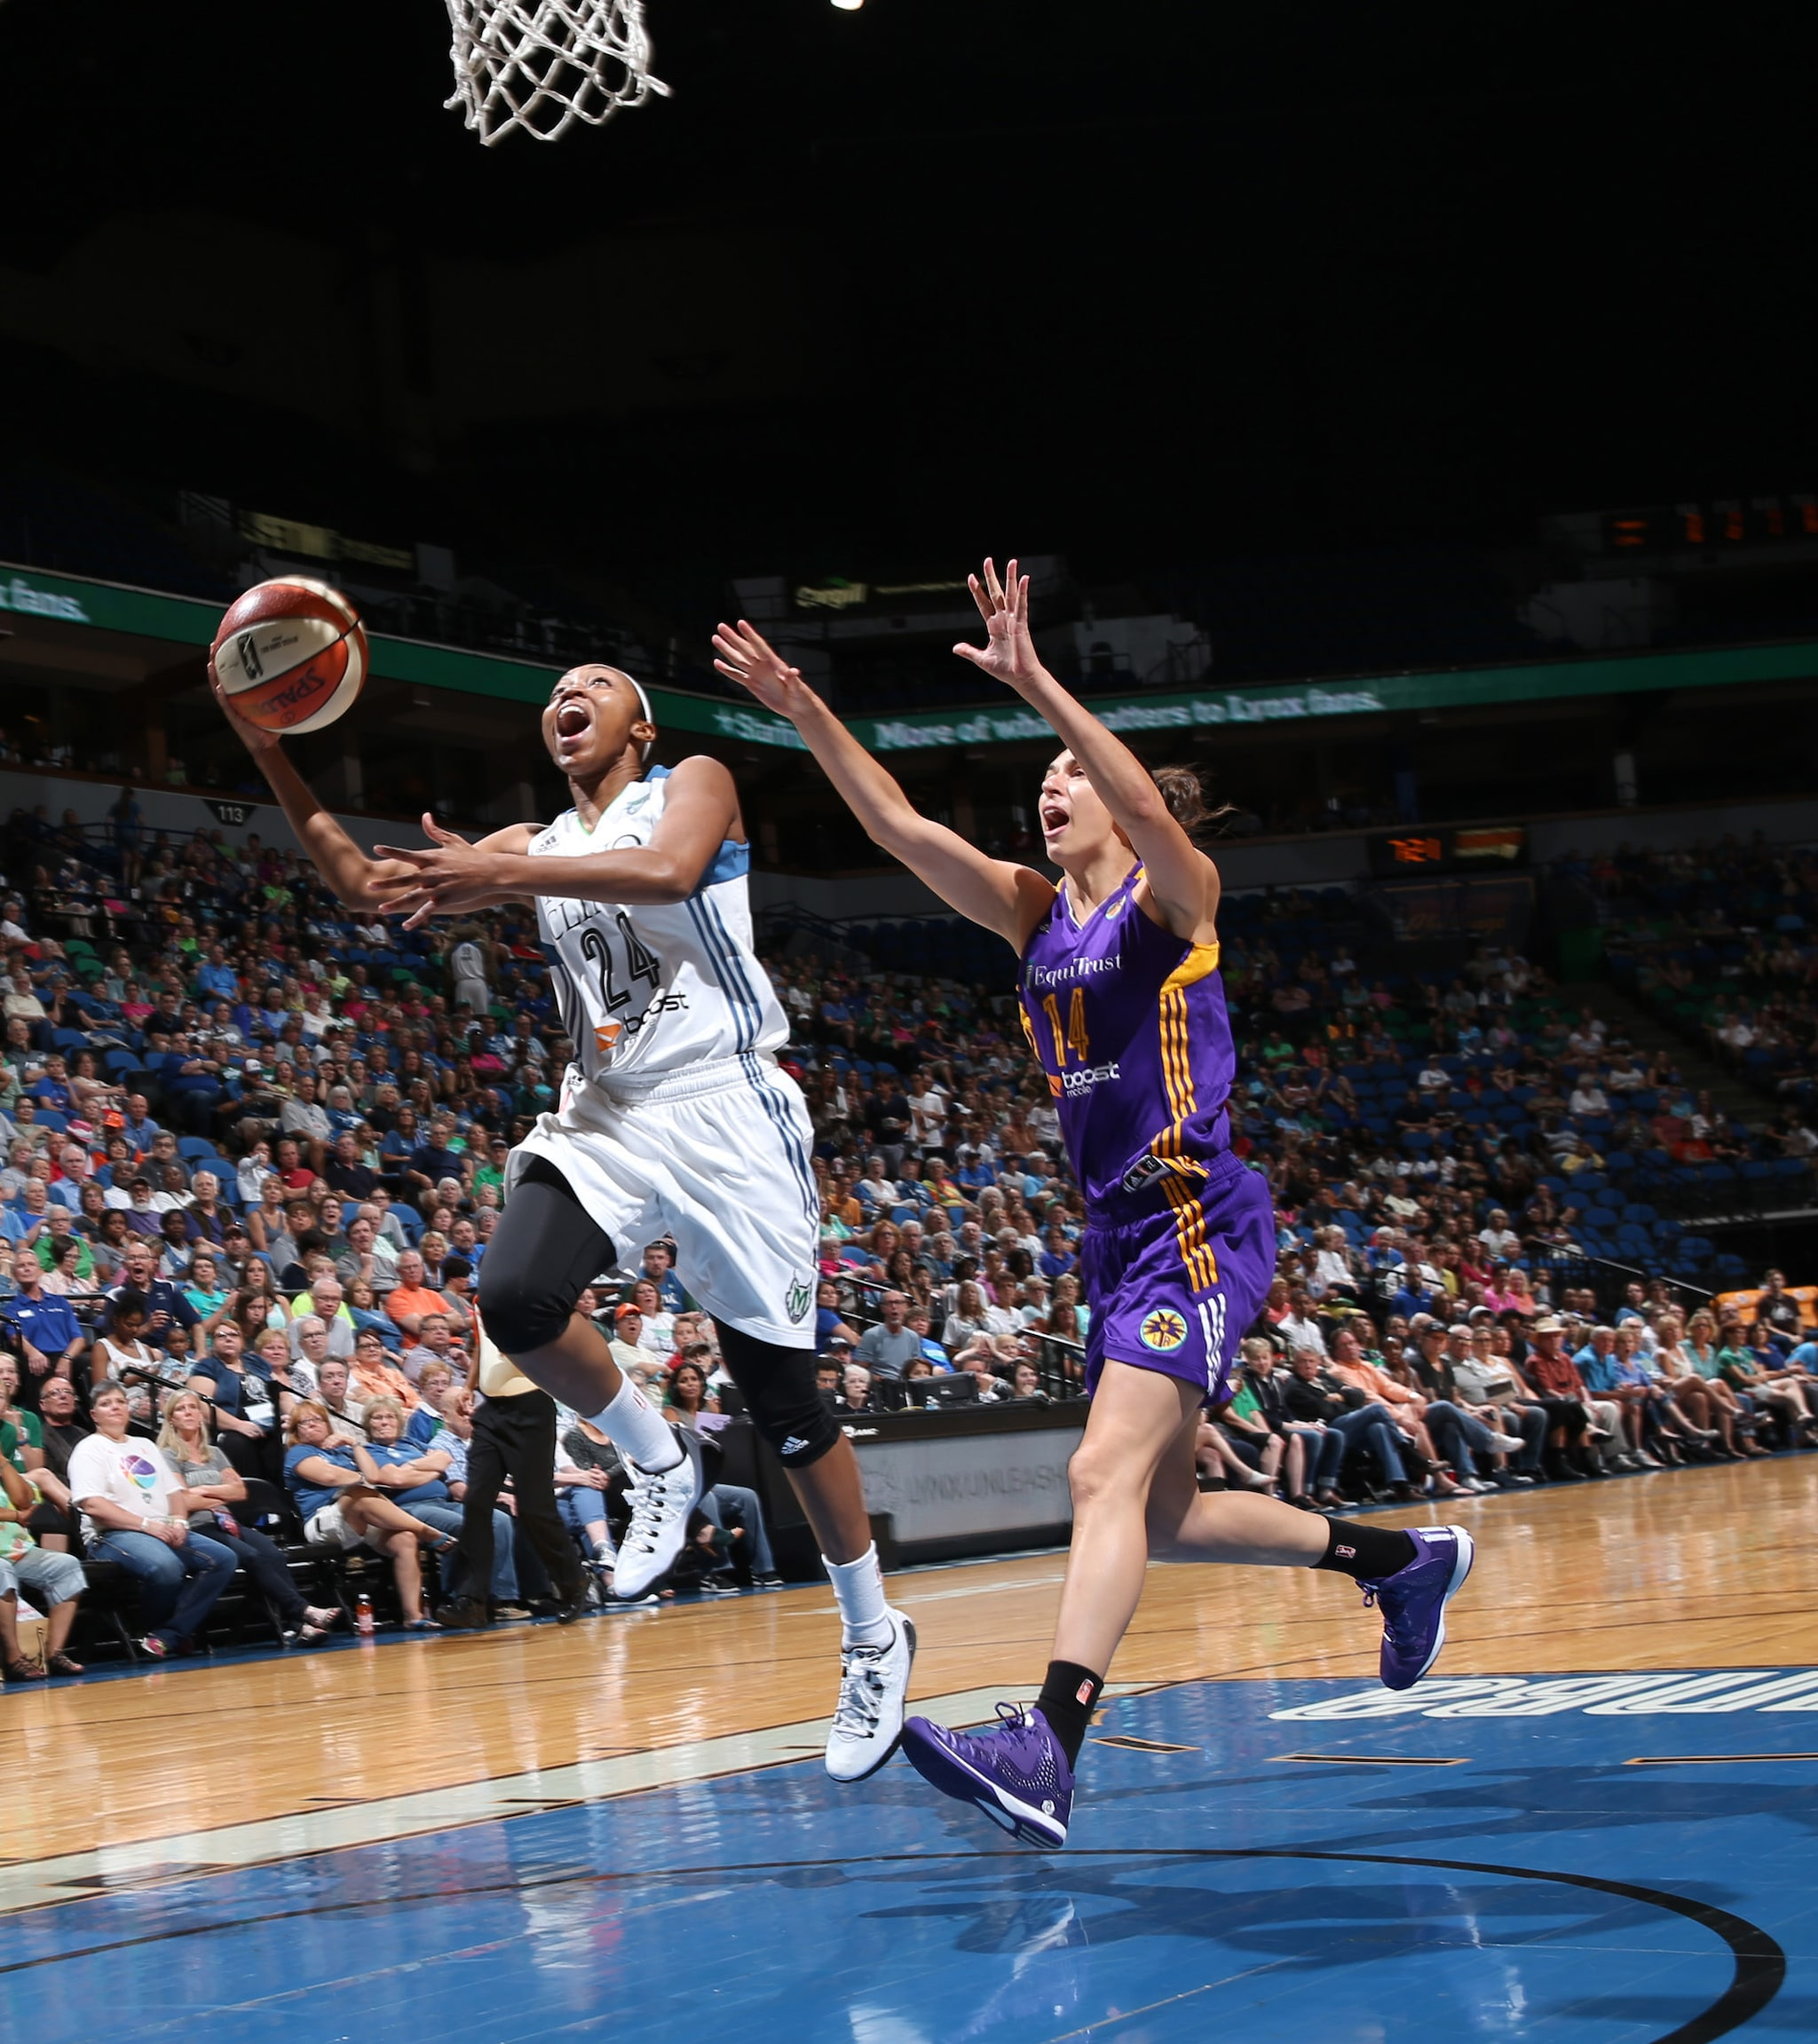 Lynx guard Renee Montgomery had a rather quiet game off the bench, making her only shot and finishing with just two points. She did however have a huge play defensively, taking a charge late in the fourth quarter to help seal a Lynx victory.